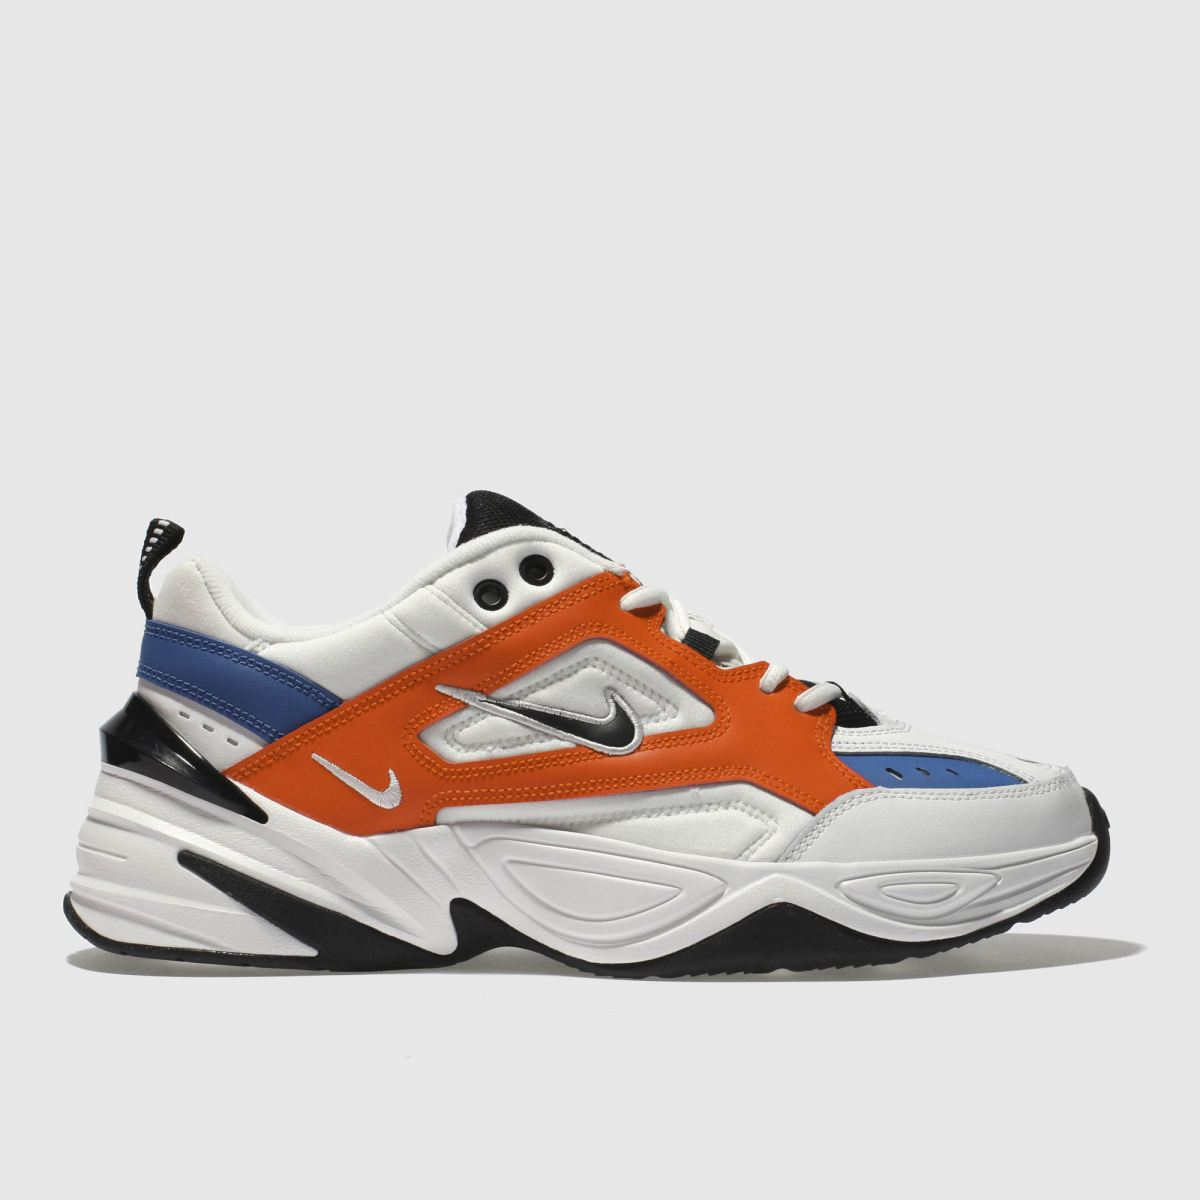 Nike White & Orange M2k Tekno Trainers